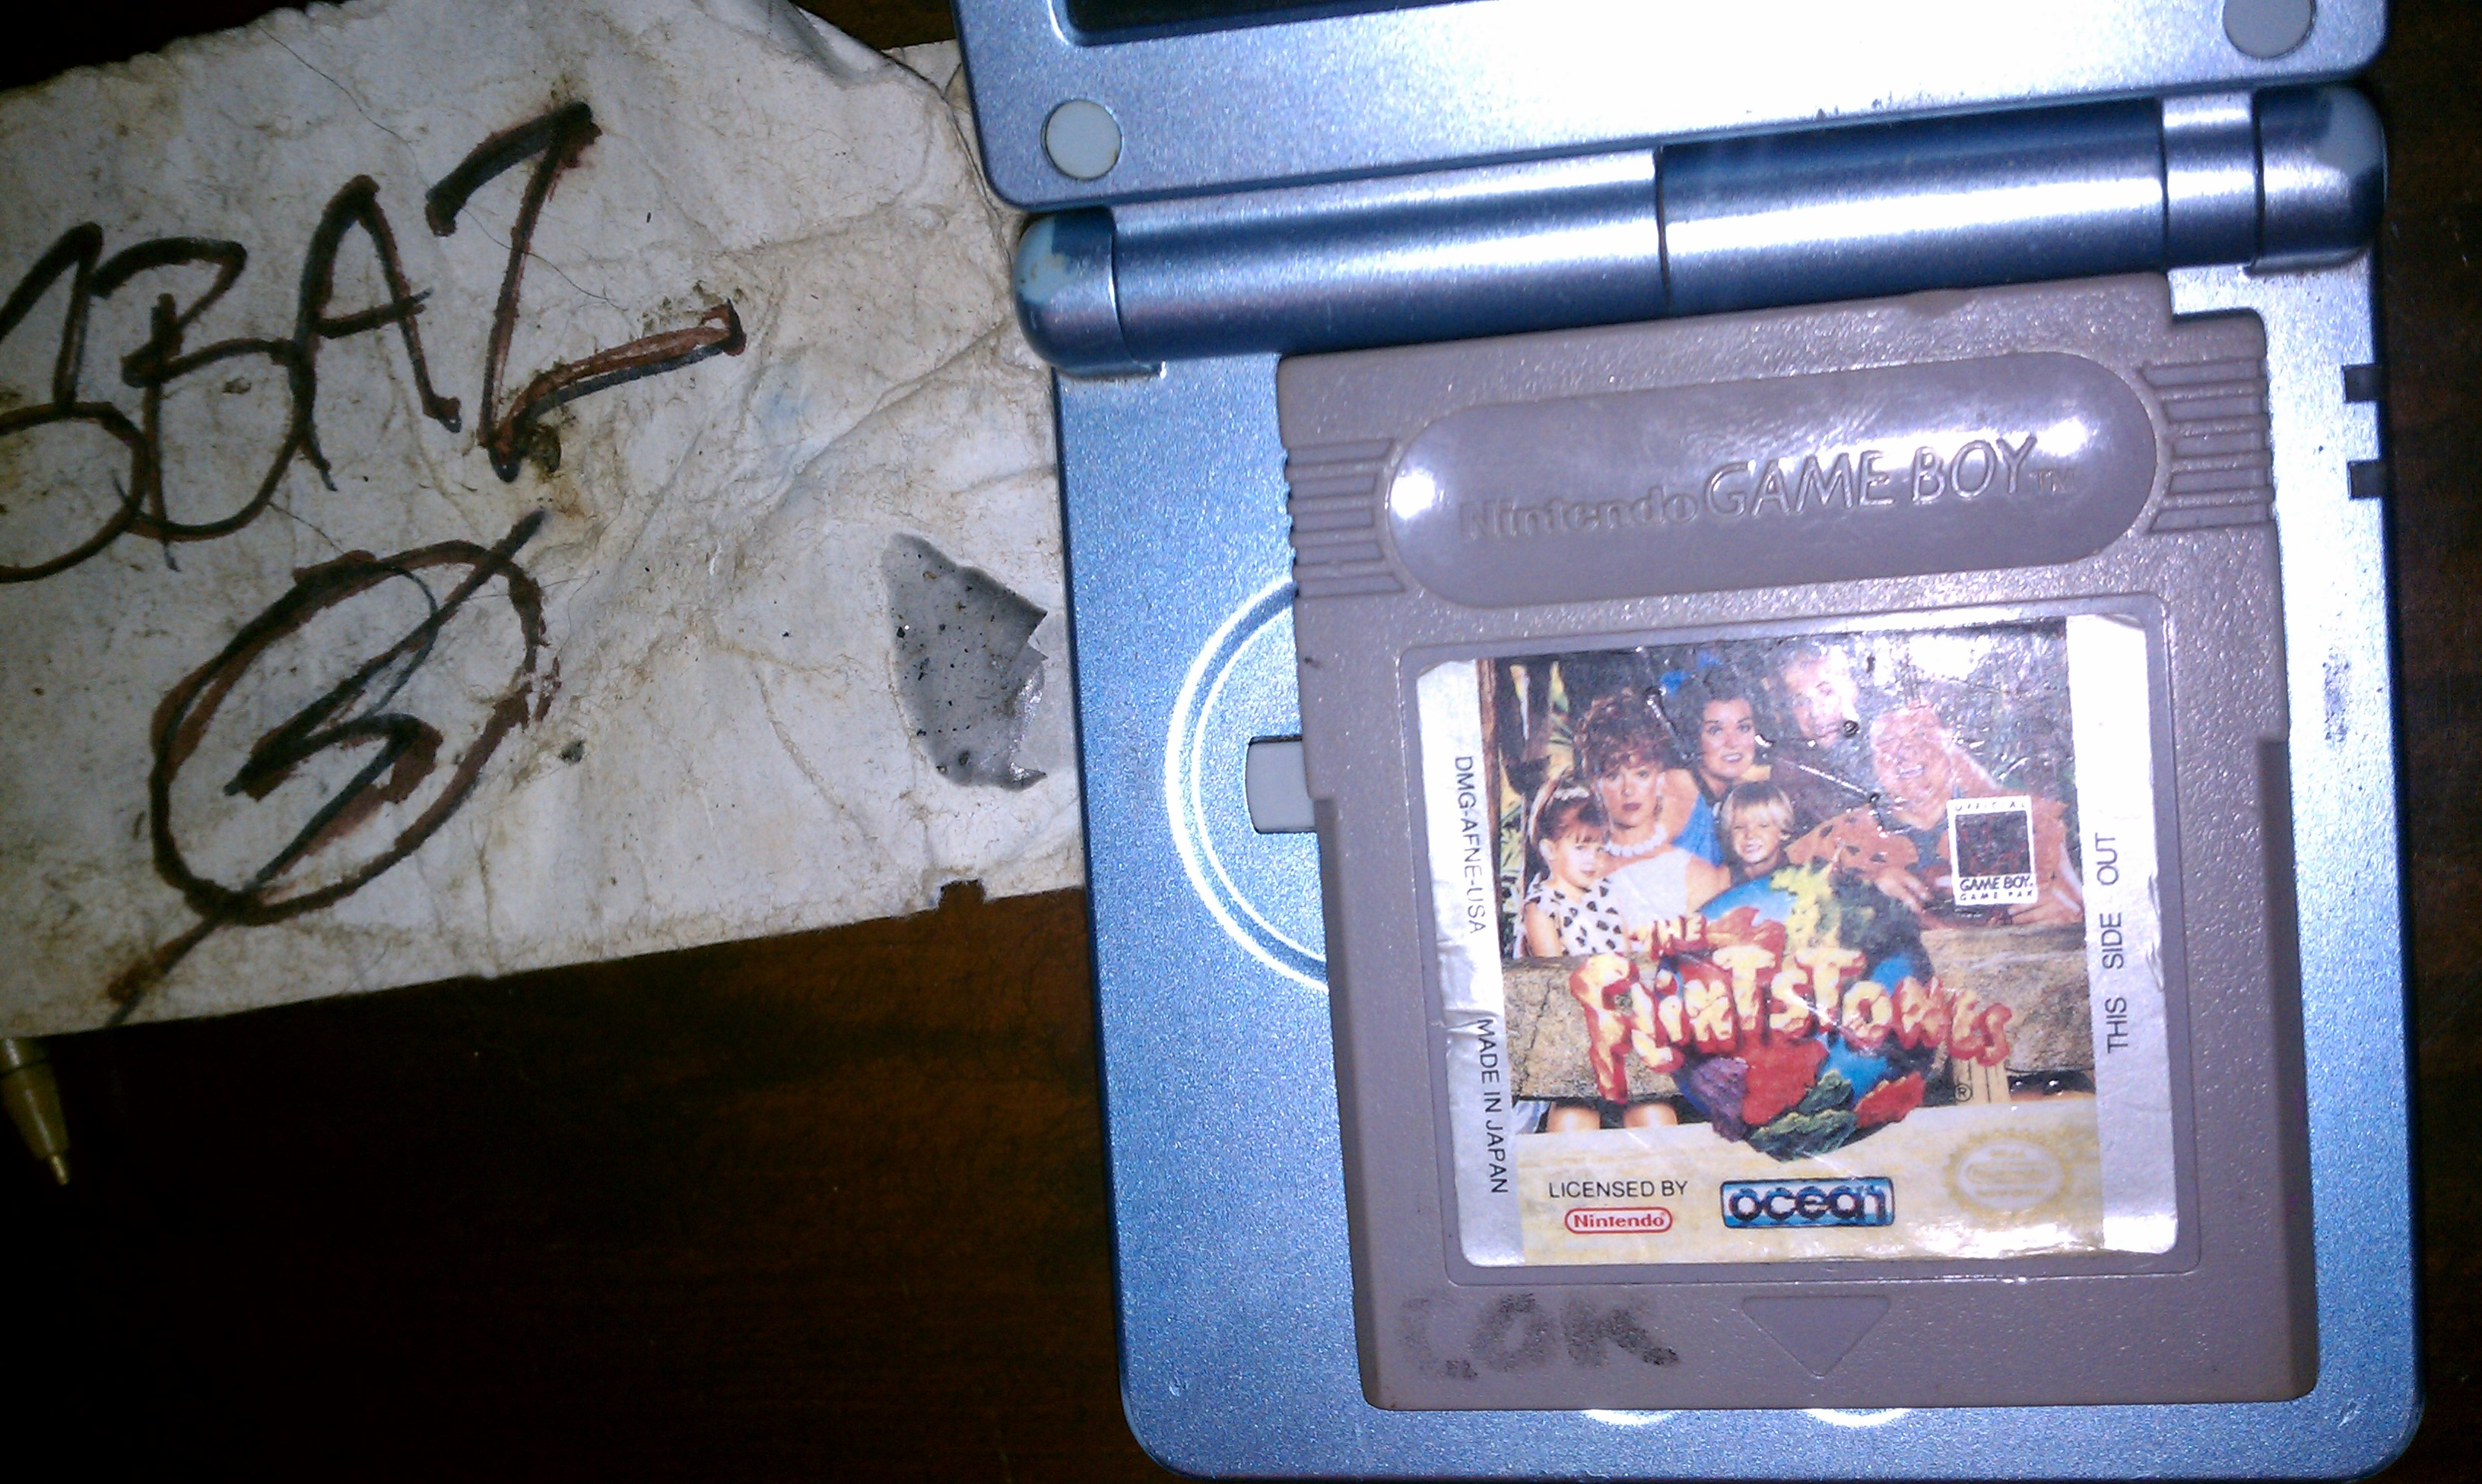 S.BAZ: The Flintstones: The Movie (Game Boy) 600 points on 2020-05-31 15:31:41